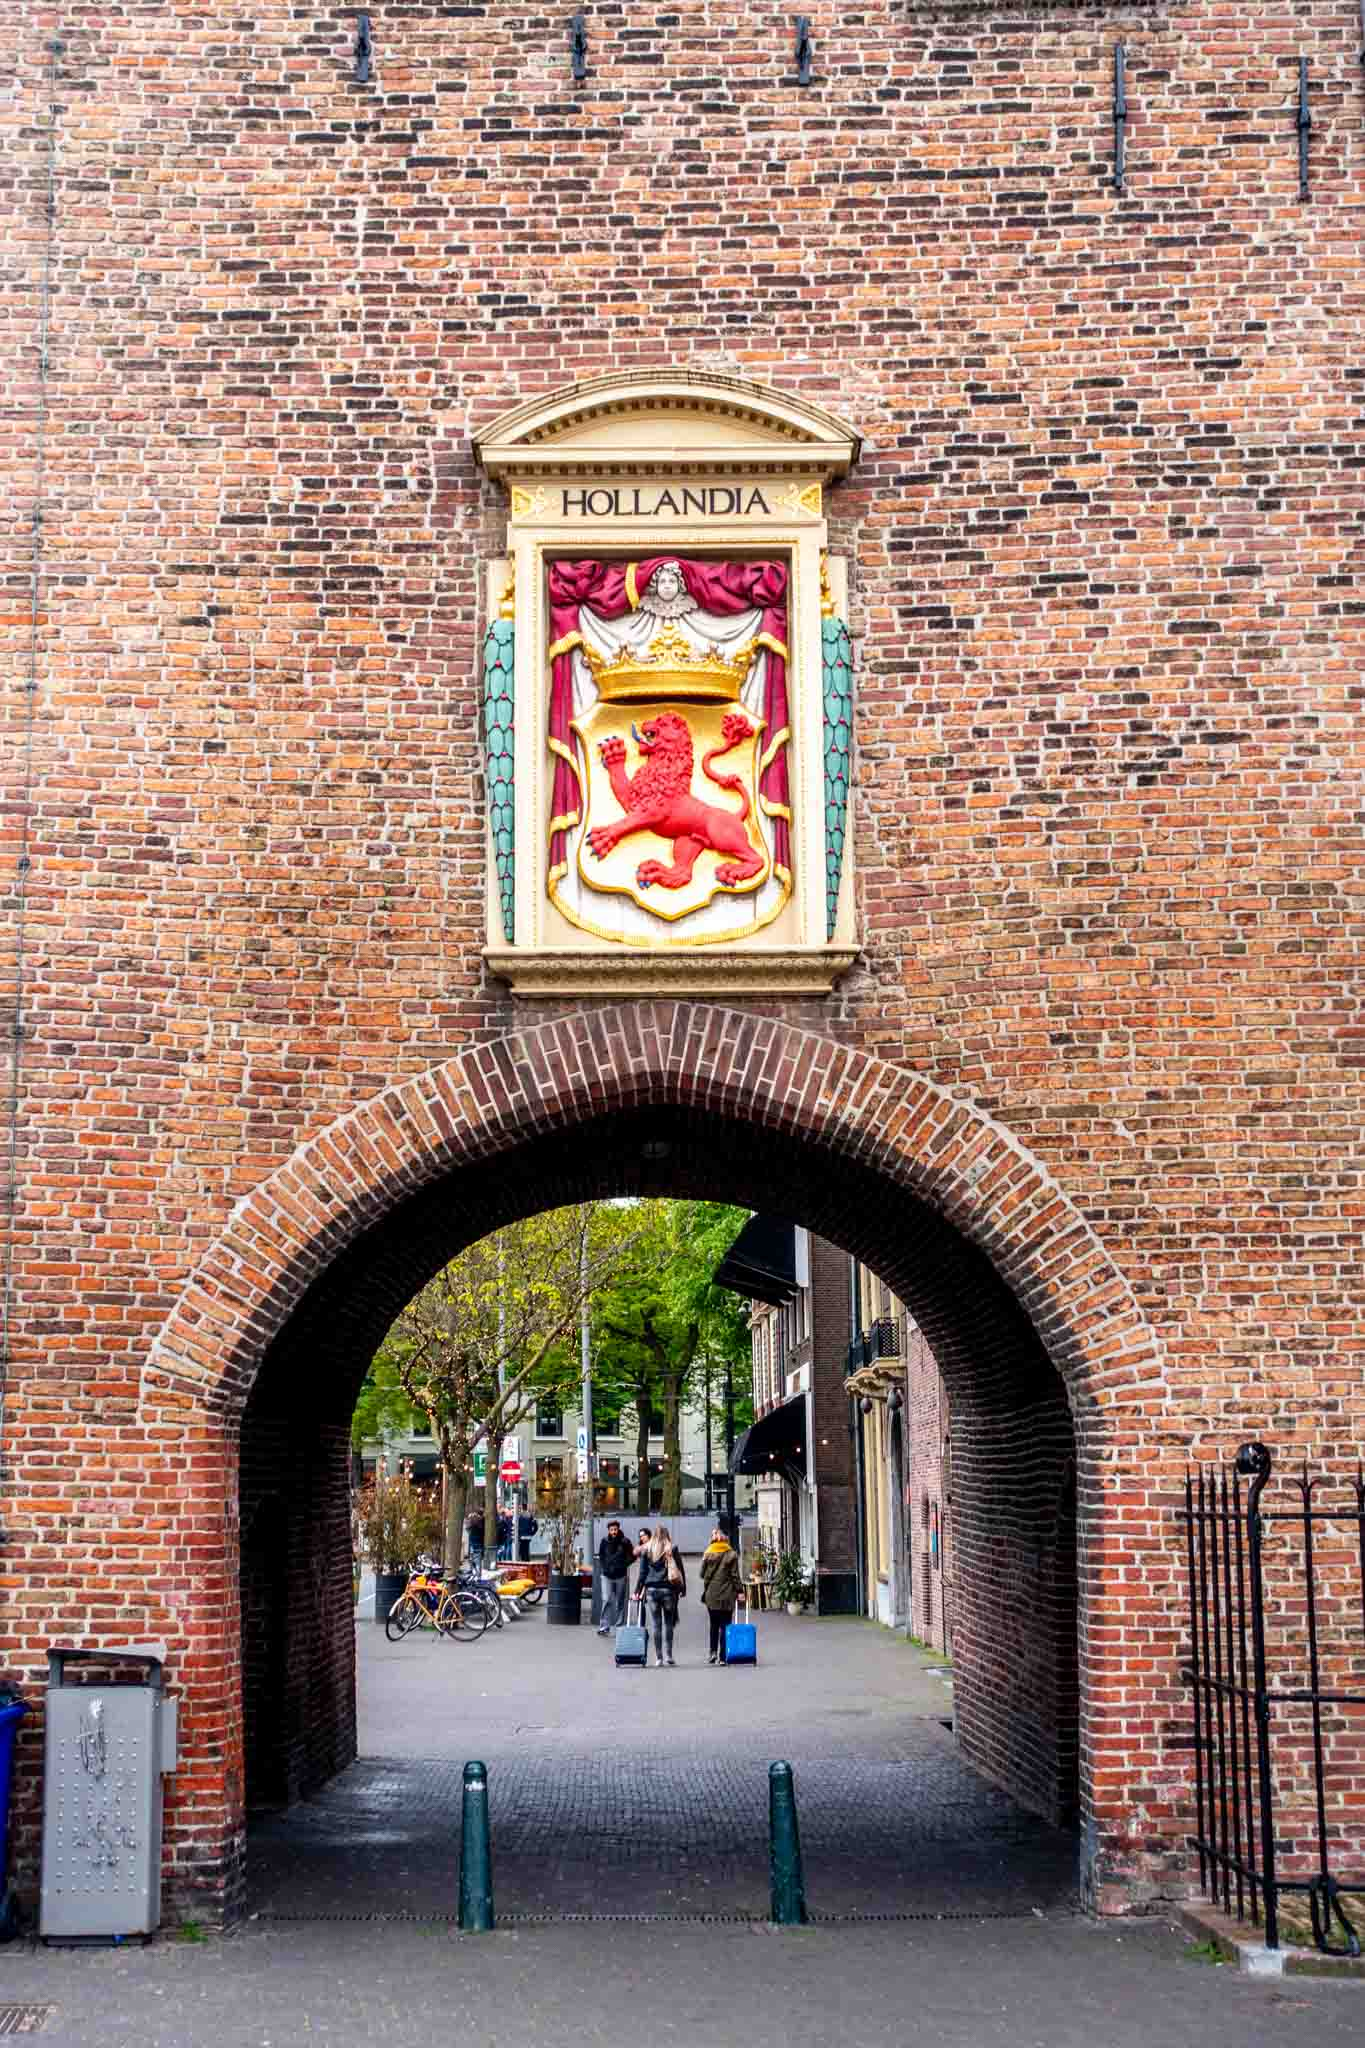 """Coat of arms and sign for """"Hollandia"""" hanging over a brick city gate"""